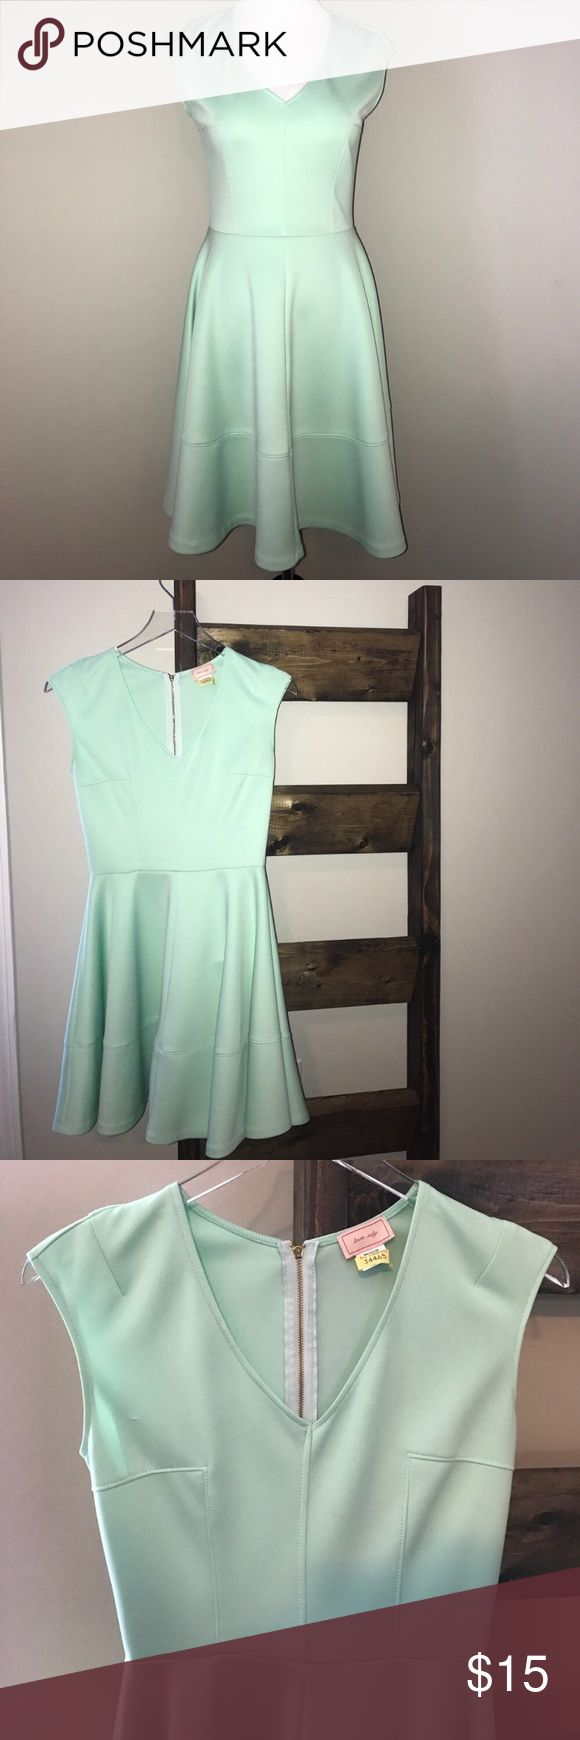 V-Neck Cap Sleeve Dress Flattering Fit 👗 Aqua V-Neck Cap Sleeve Dress 👗  + Super flattering aqua colored cap sleeve dress + I recently lost weight and now it's too big for me + Normal wear snags but still in excellent condition + 90% polyester / 10% spandex  + Freshly dry cleaned  + Smoke free & pet free home 🏡 + No trades 🚫  ✨ If you would like any additional photos or if you have any questions... please let me know! Dresses